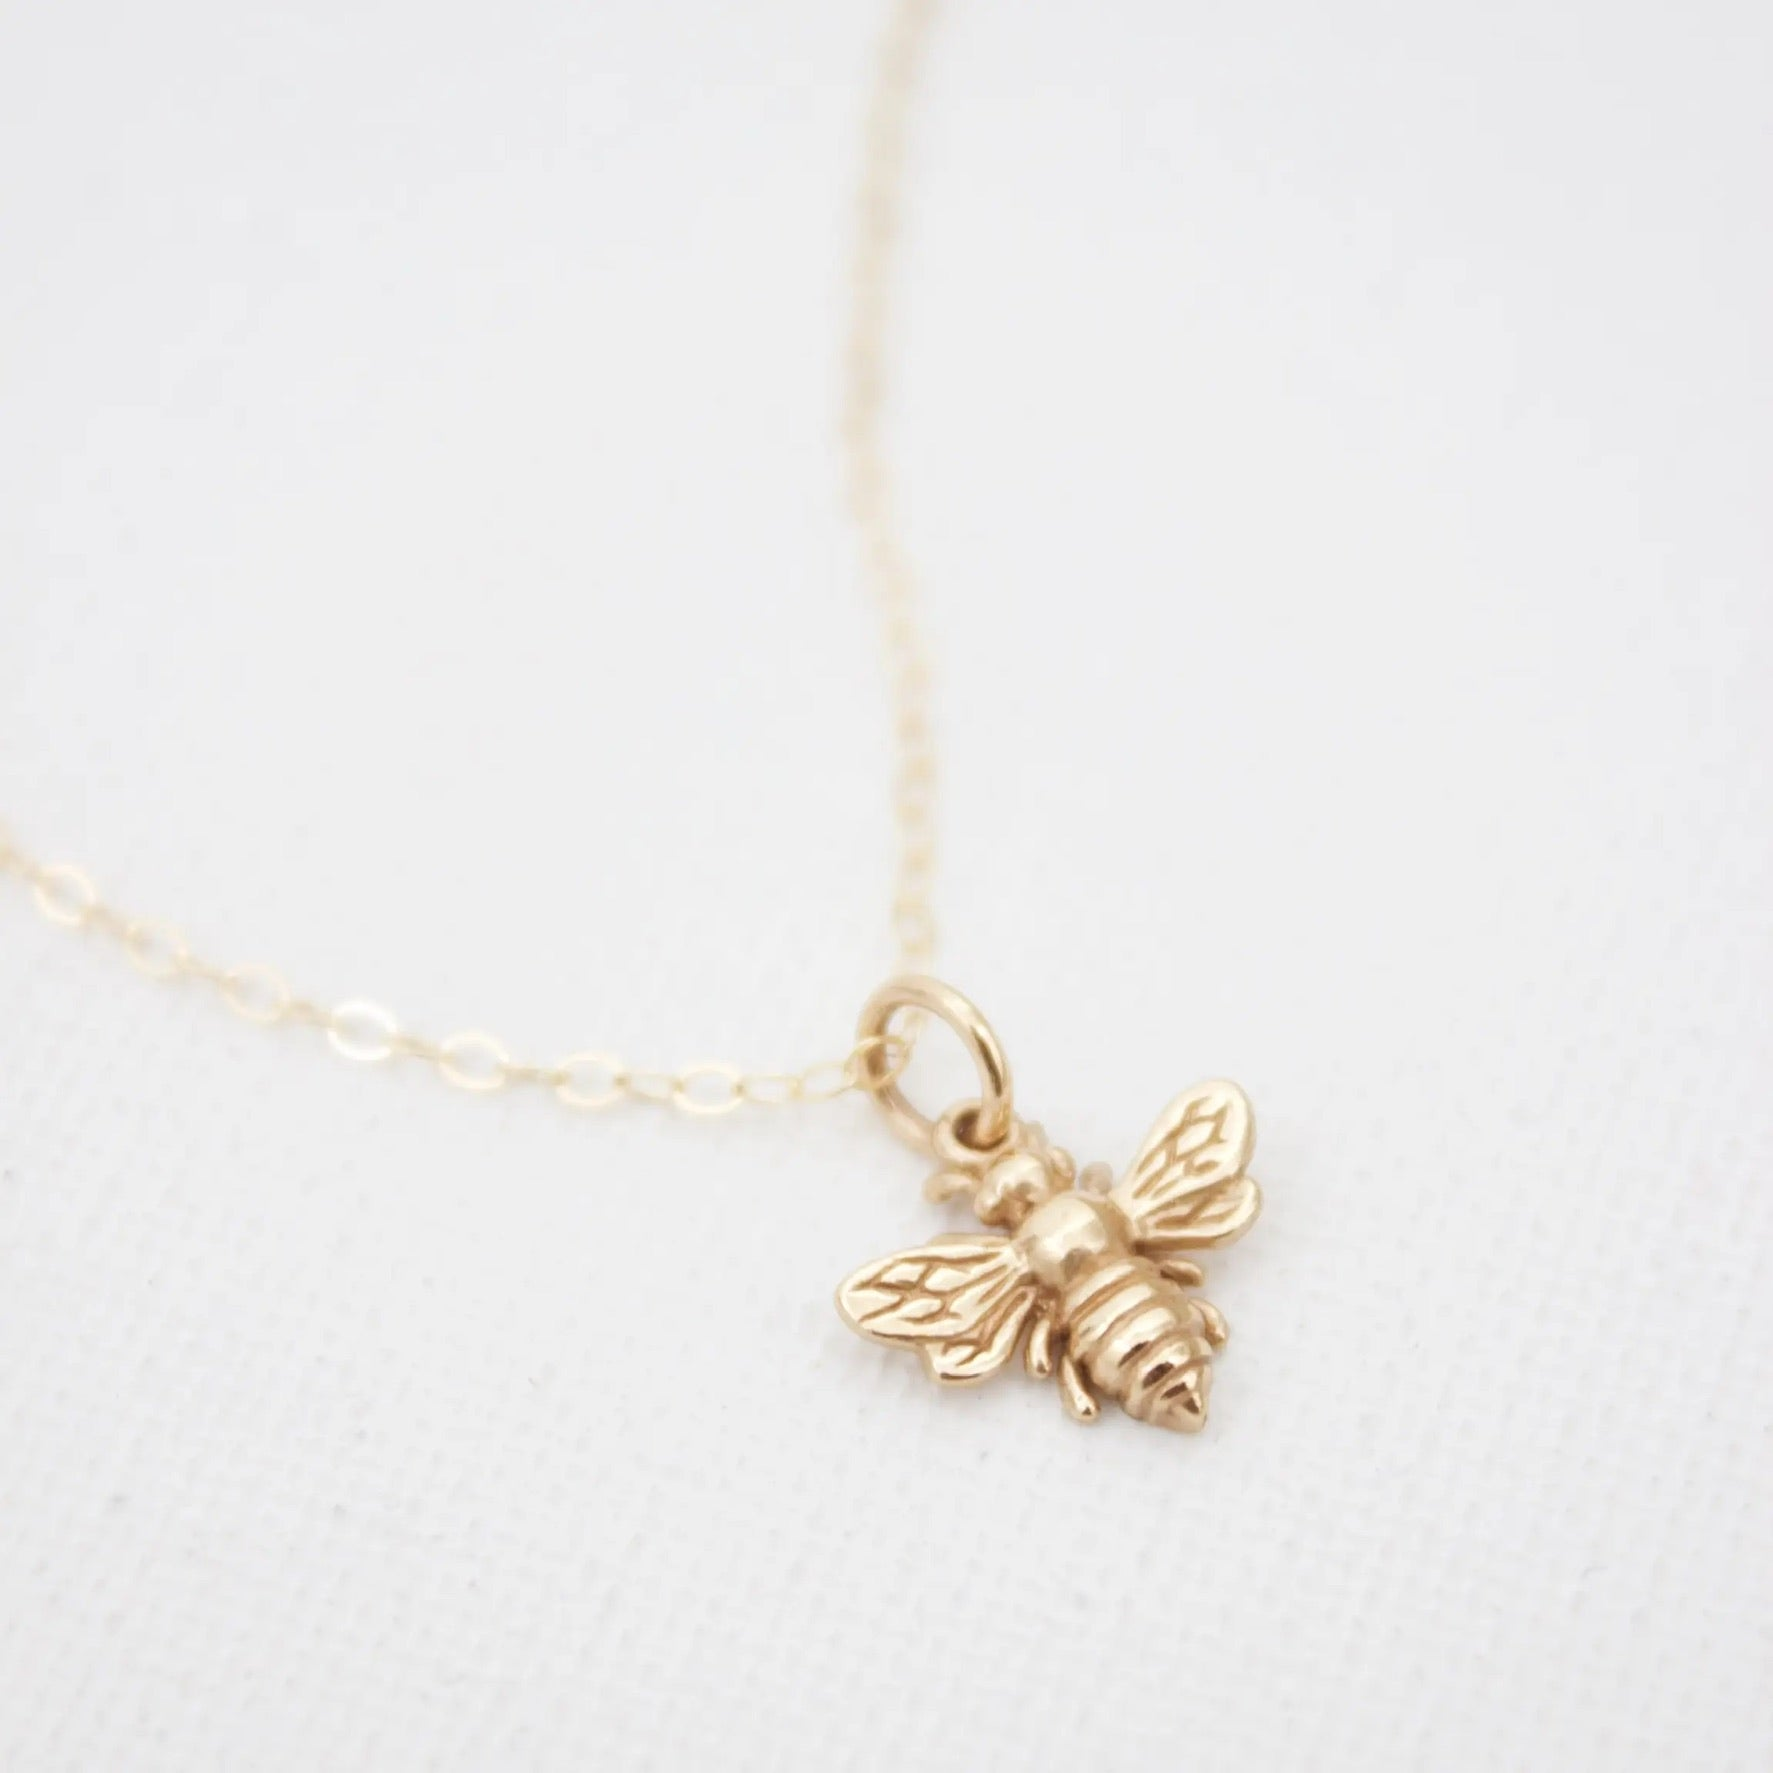 Petite Bee Necklace